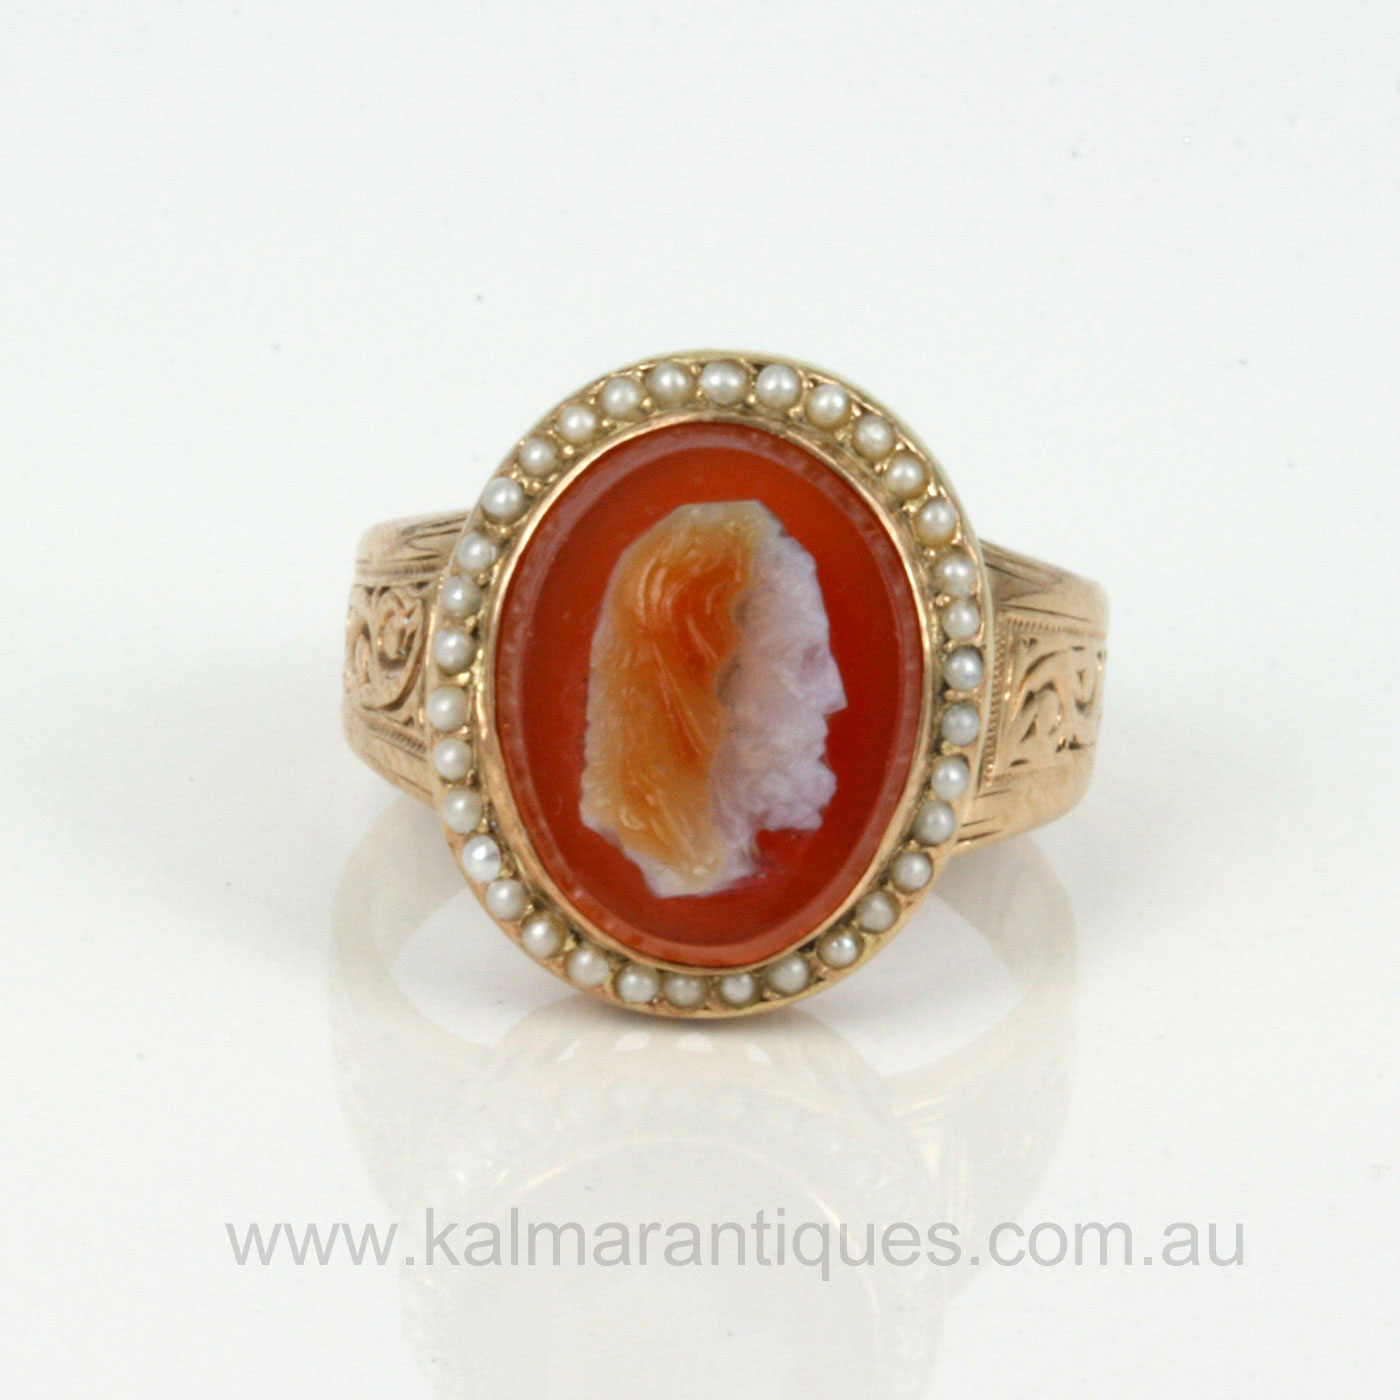 Buy antique cameo vintage antique cameo antique jewellery in antique hard stone cameo ring with pearls aloadofball Choice Image